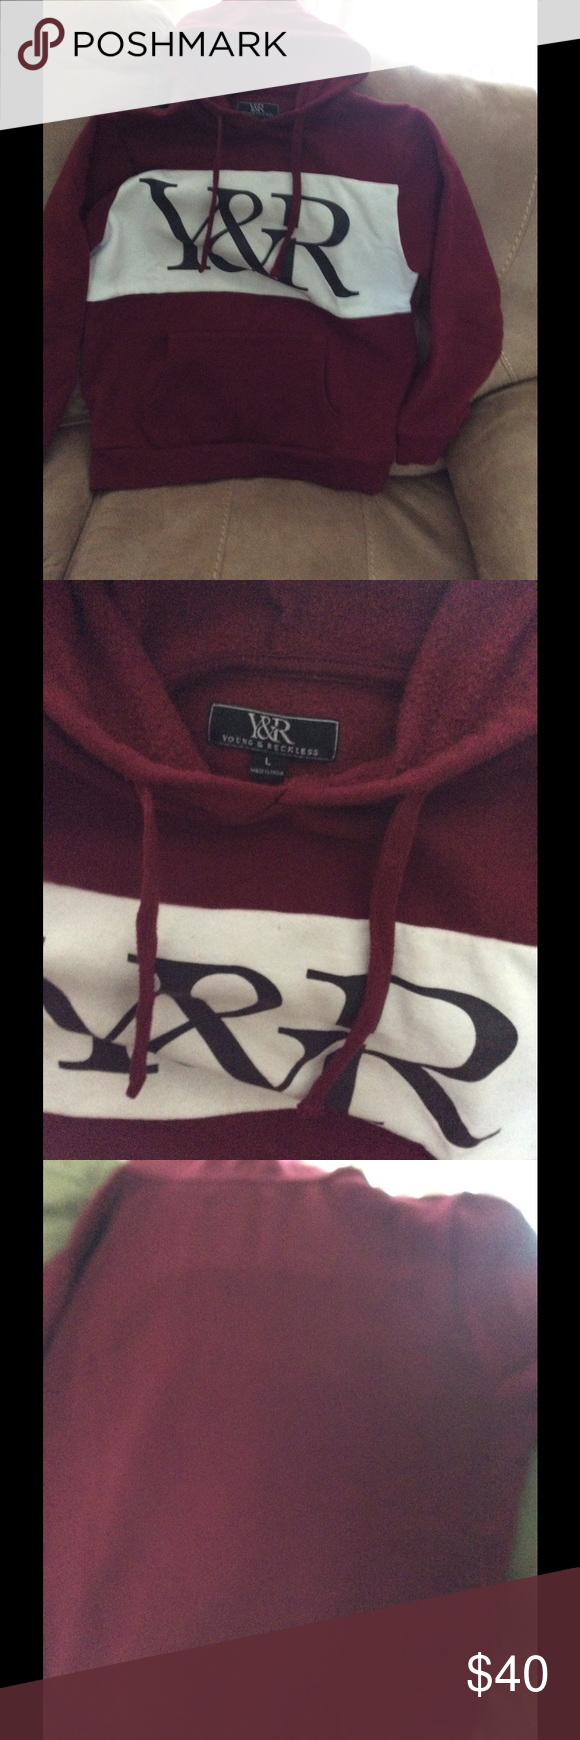 Young & Reckless Good used condition, burgundy men's Y&R hoodie size large. Young & Reckless Shirts Sweatshirts & Hoodies